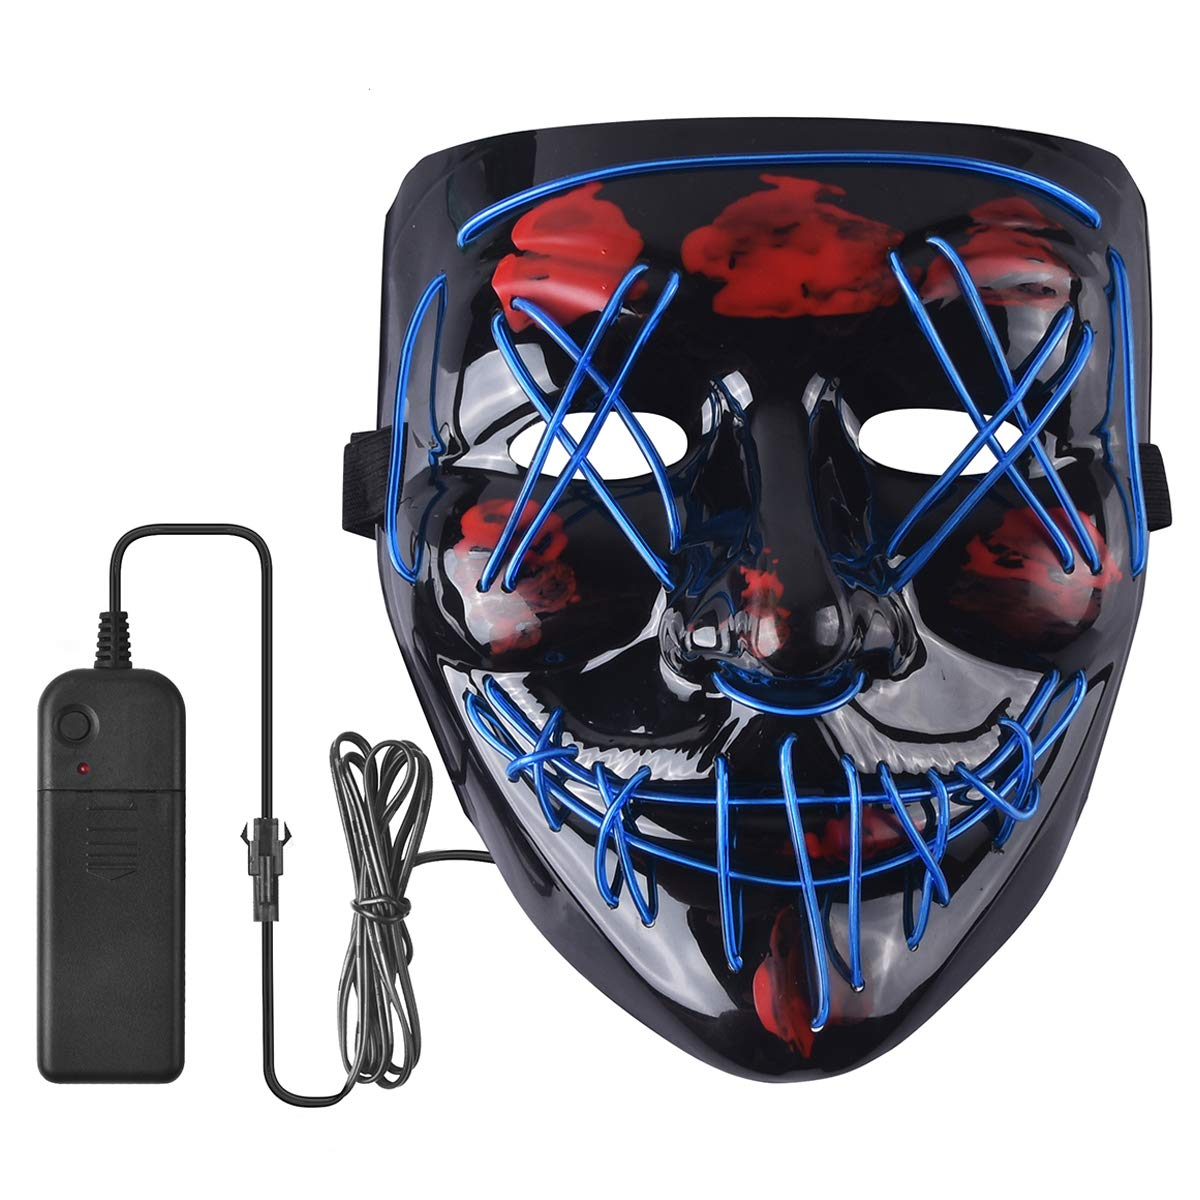 Halloween Mask Scary LED Light Up Mask for Halloween Festival Party (Blue) by BUSAODISA